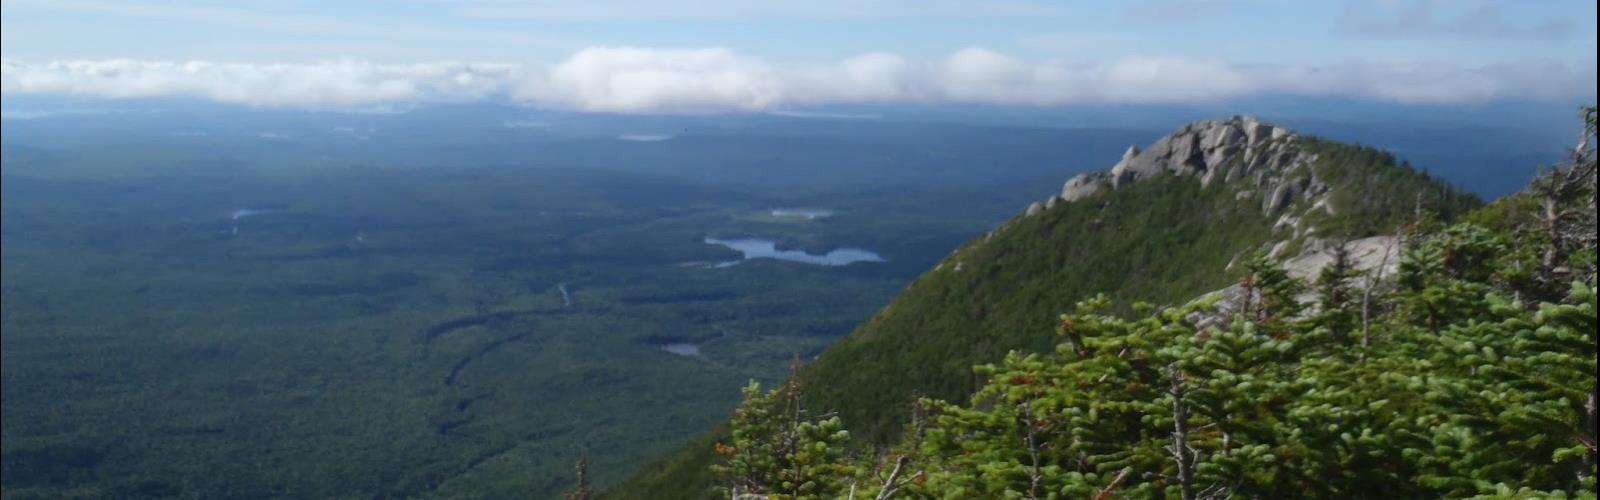 Doubletop Mountain, New York - Hiking